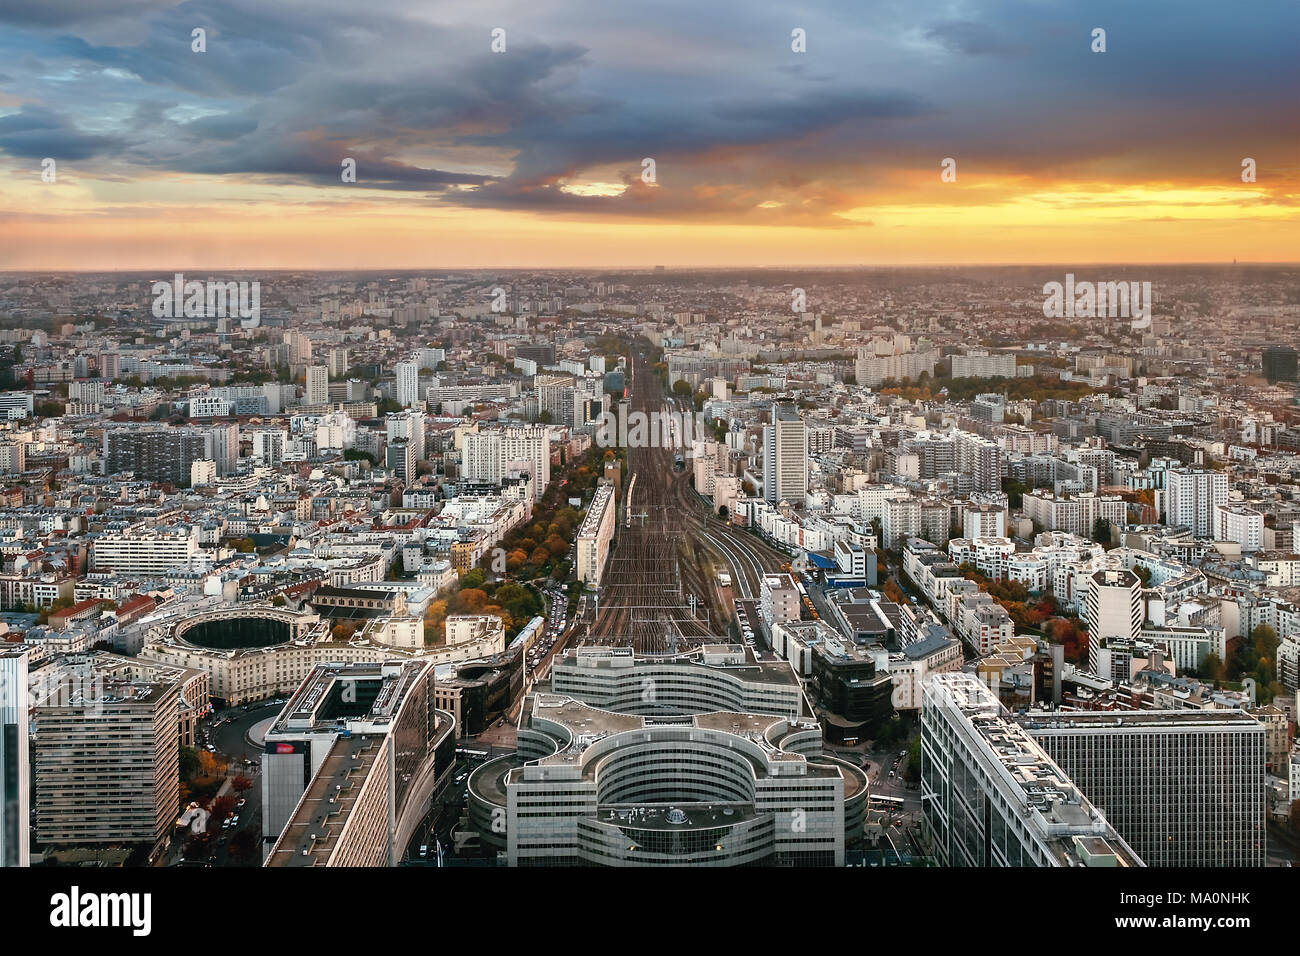 Overview of Paris from Montparnasse Tower with Montparnasse train station in the foreground. France in autumn sunset. - Stock Image